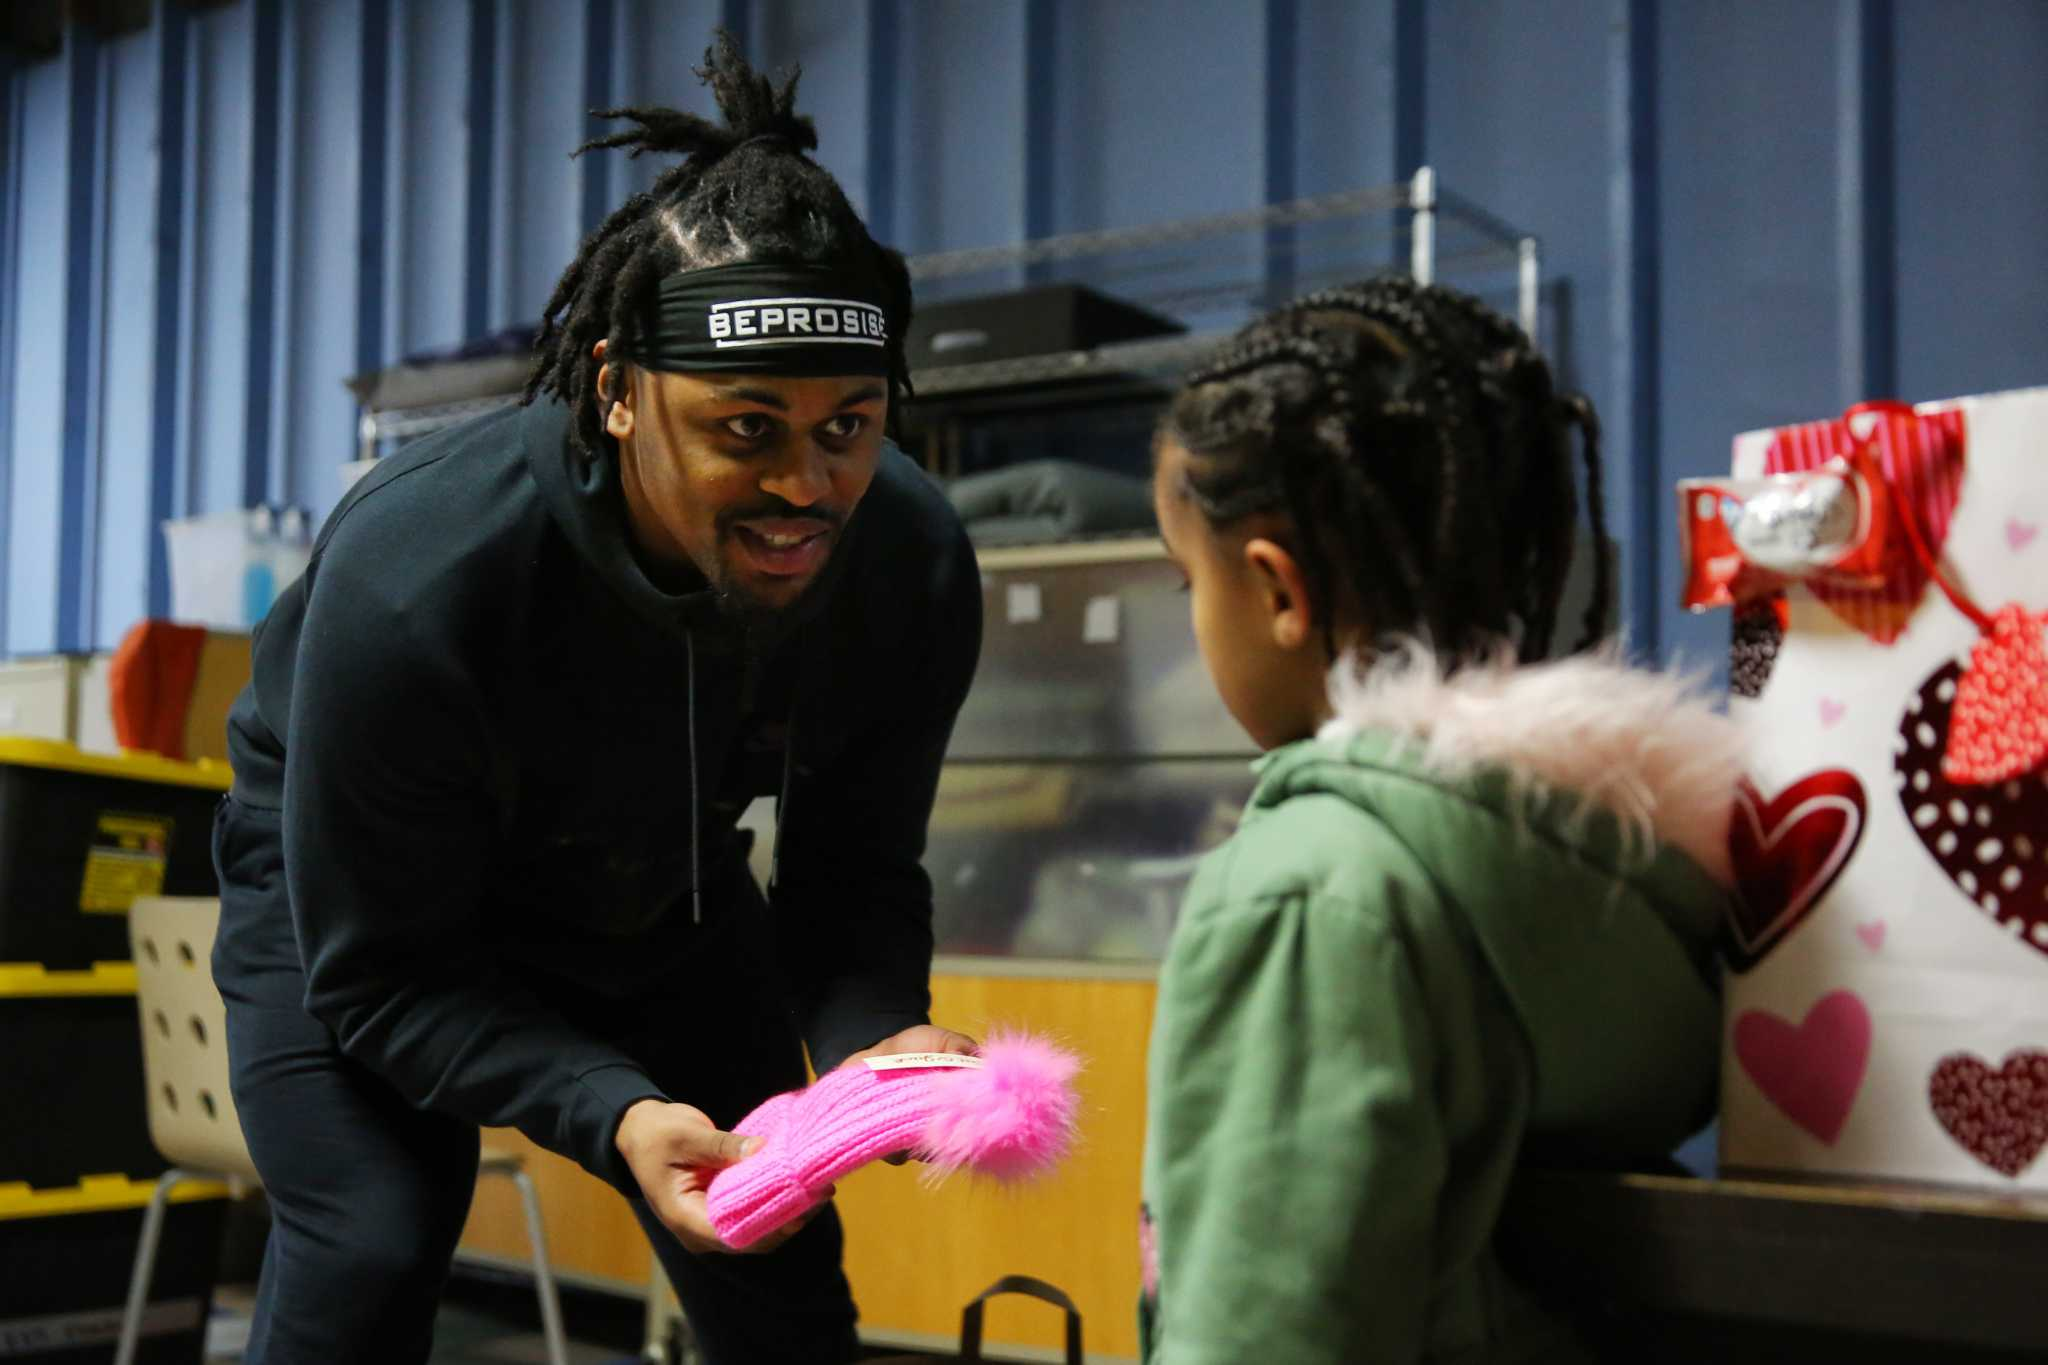 'The families love it': Seahawks' Prosise spends Valentine's Day at Mary's Place shelter